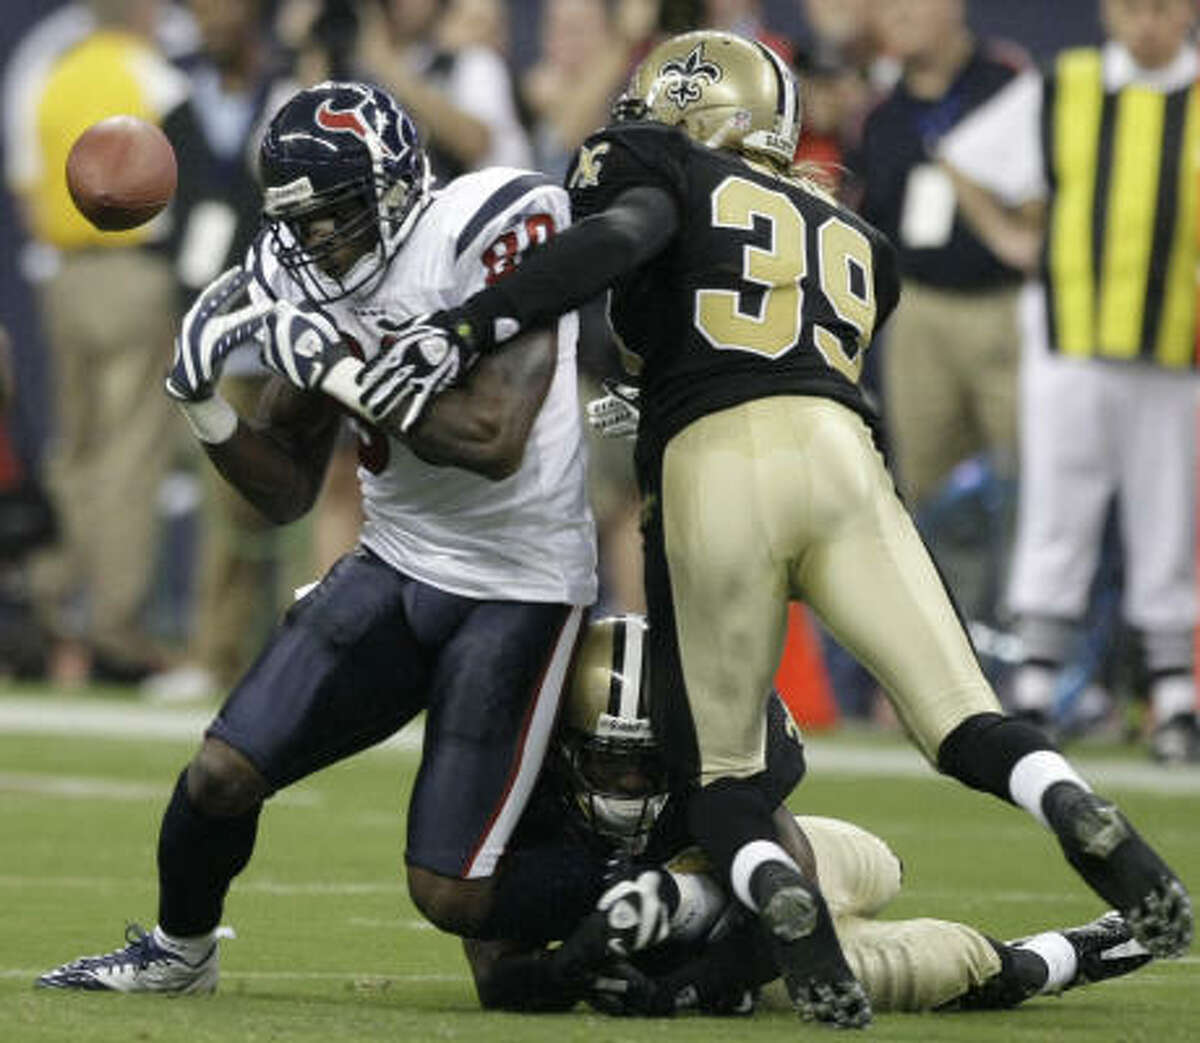 Texans wide receiver Andre Johnson fumbles as he is hit by Saints cornerback Tracy Porter (22) and safety Chris Reis (39).